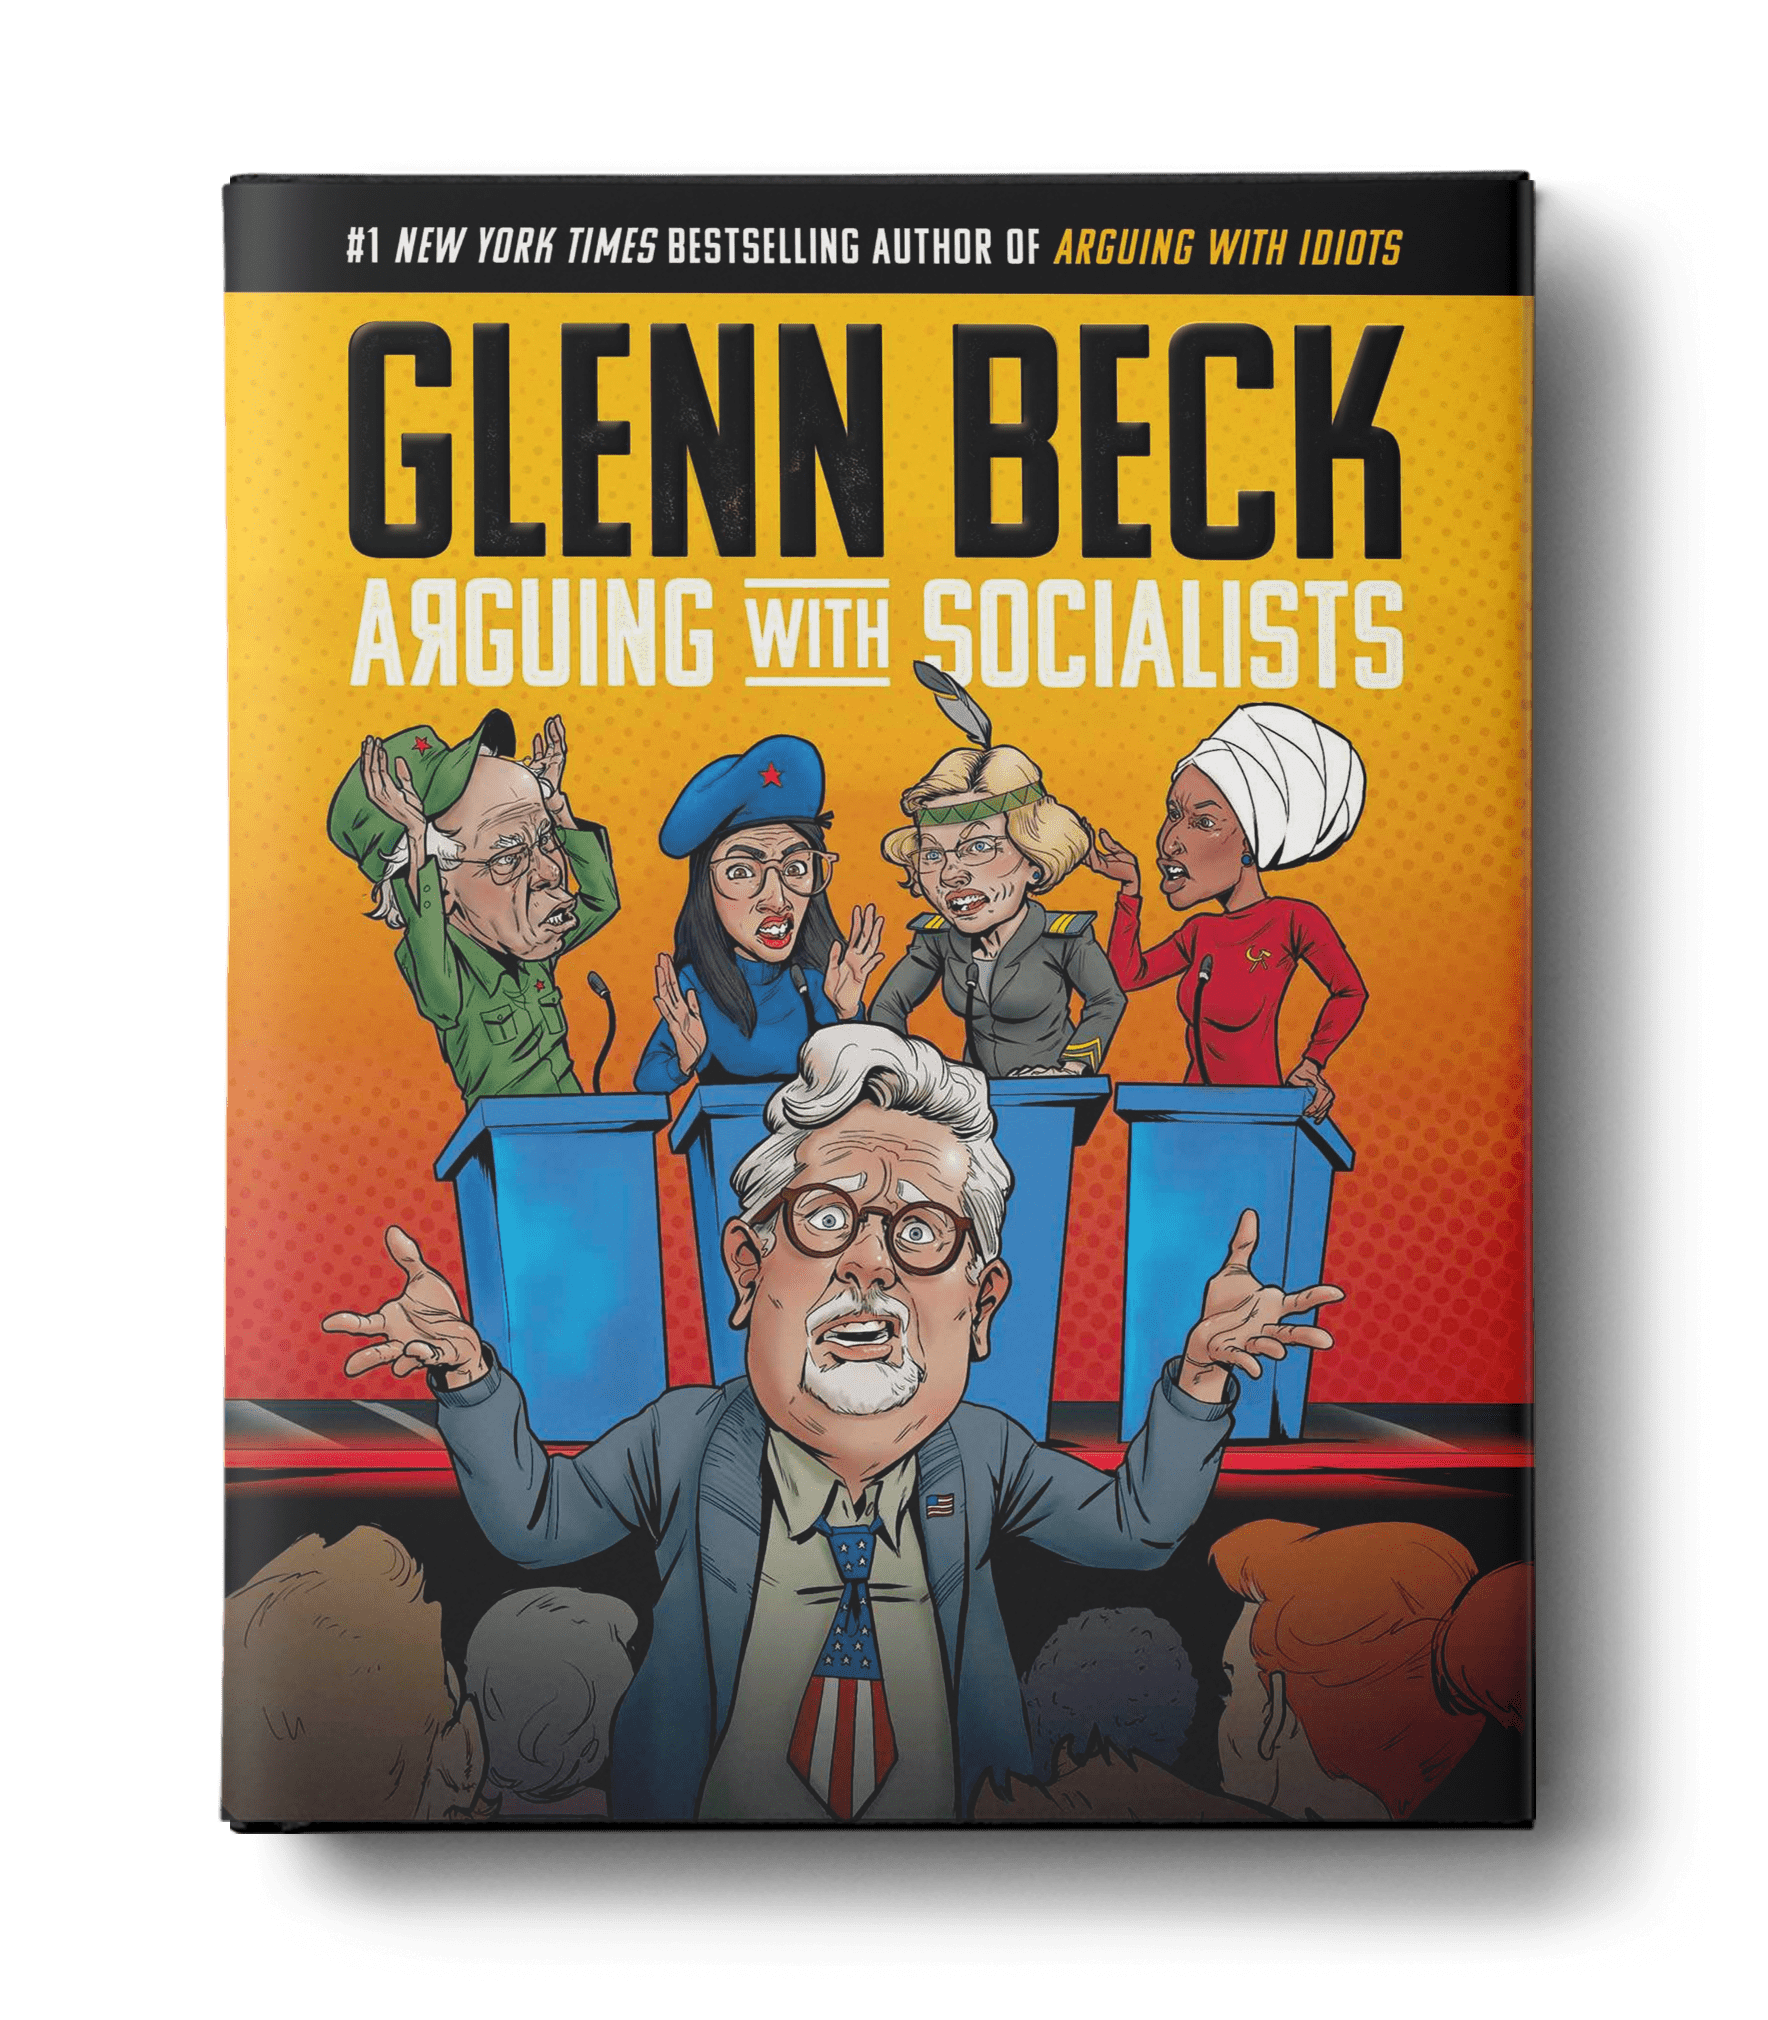 'Arguing with Socialists' by Glenn Beck